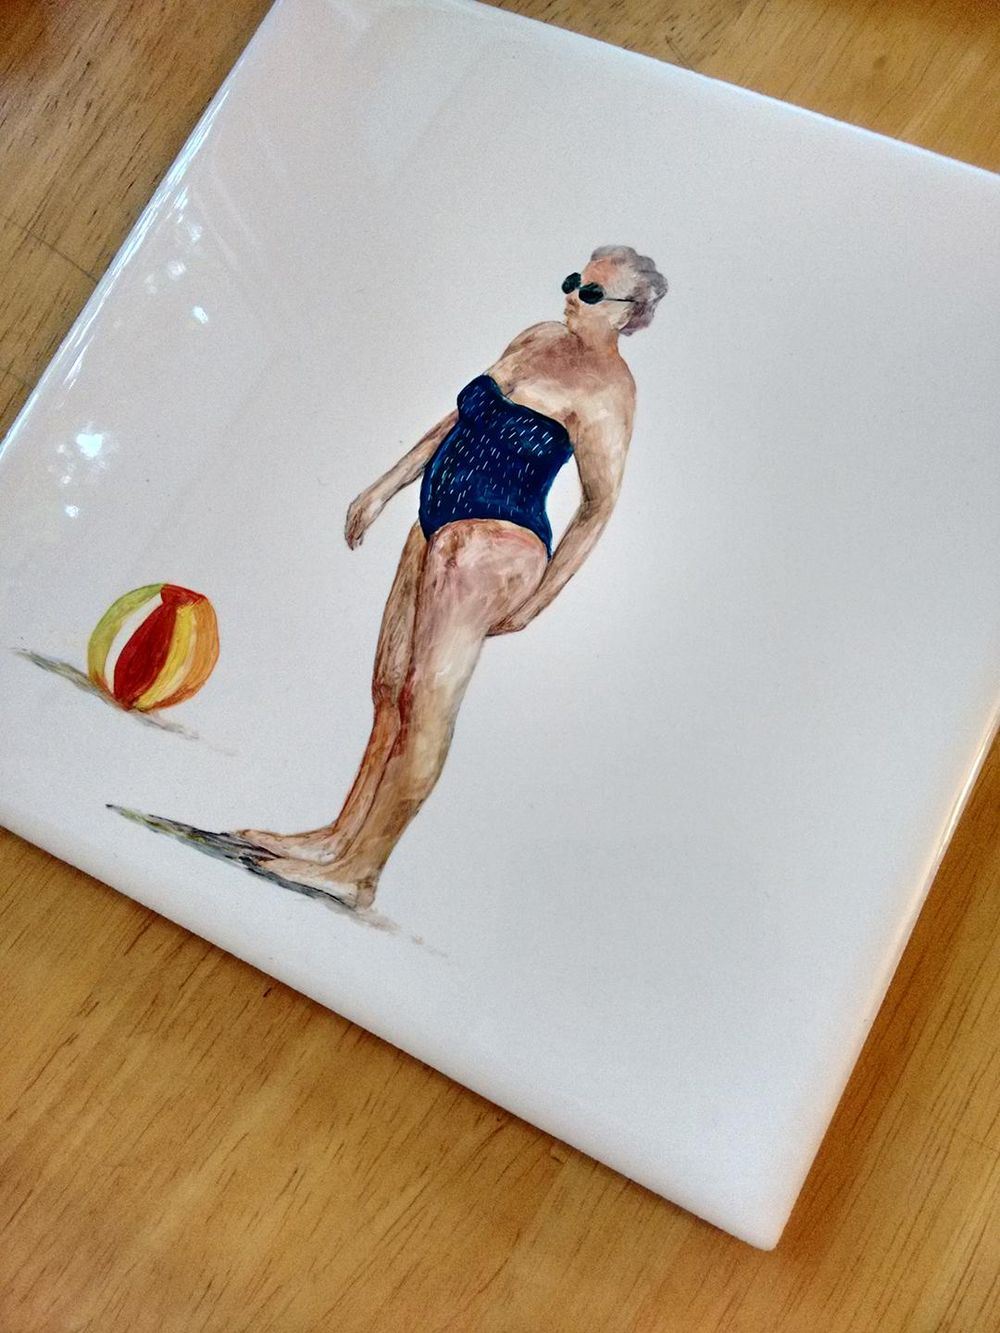 Lady with a beach ball - image 1 - student project